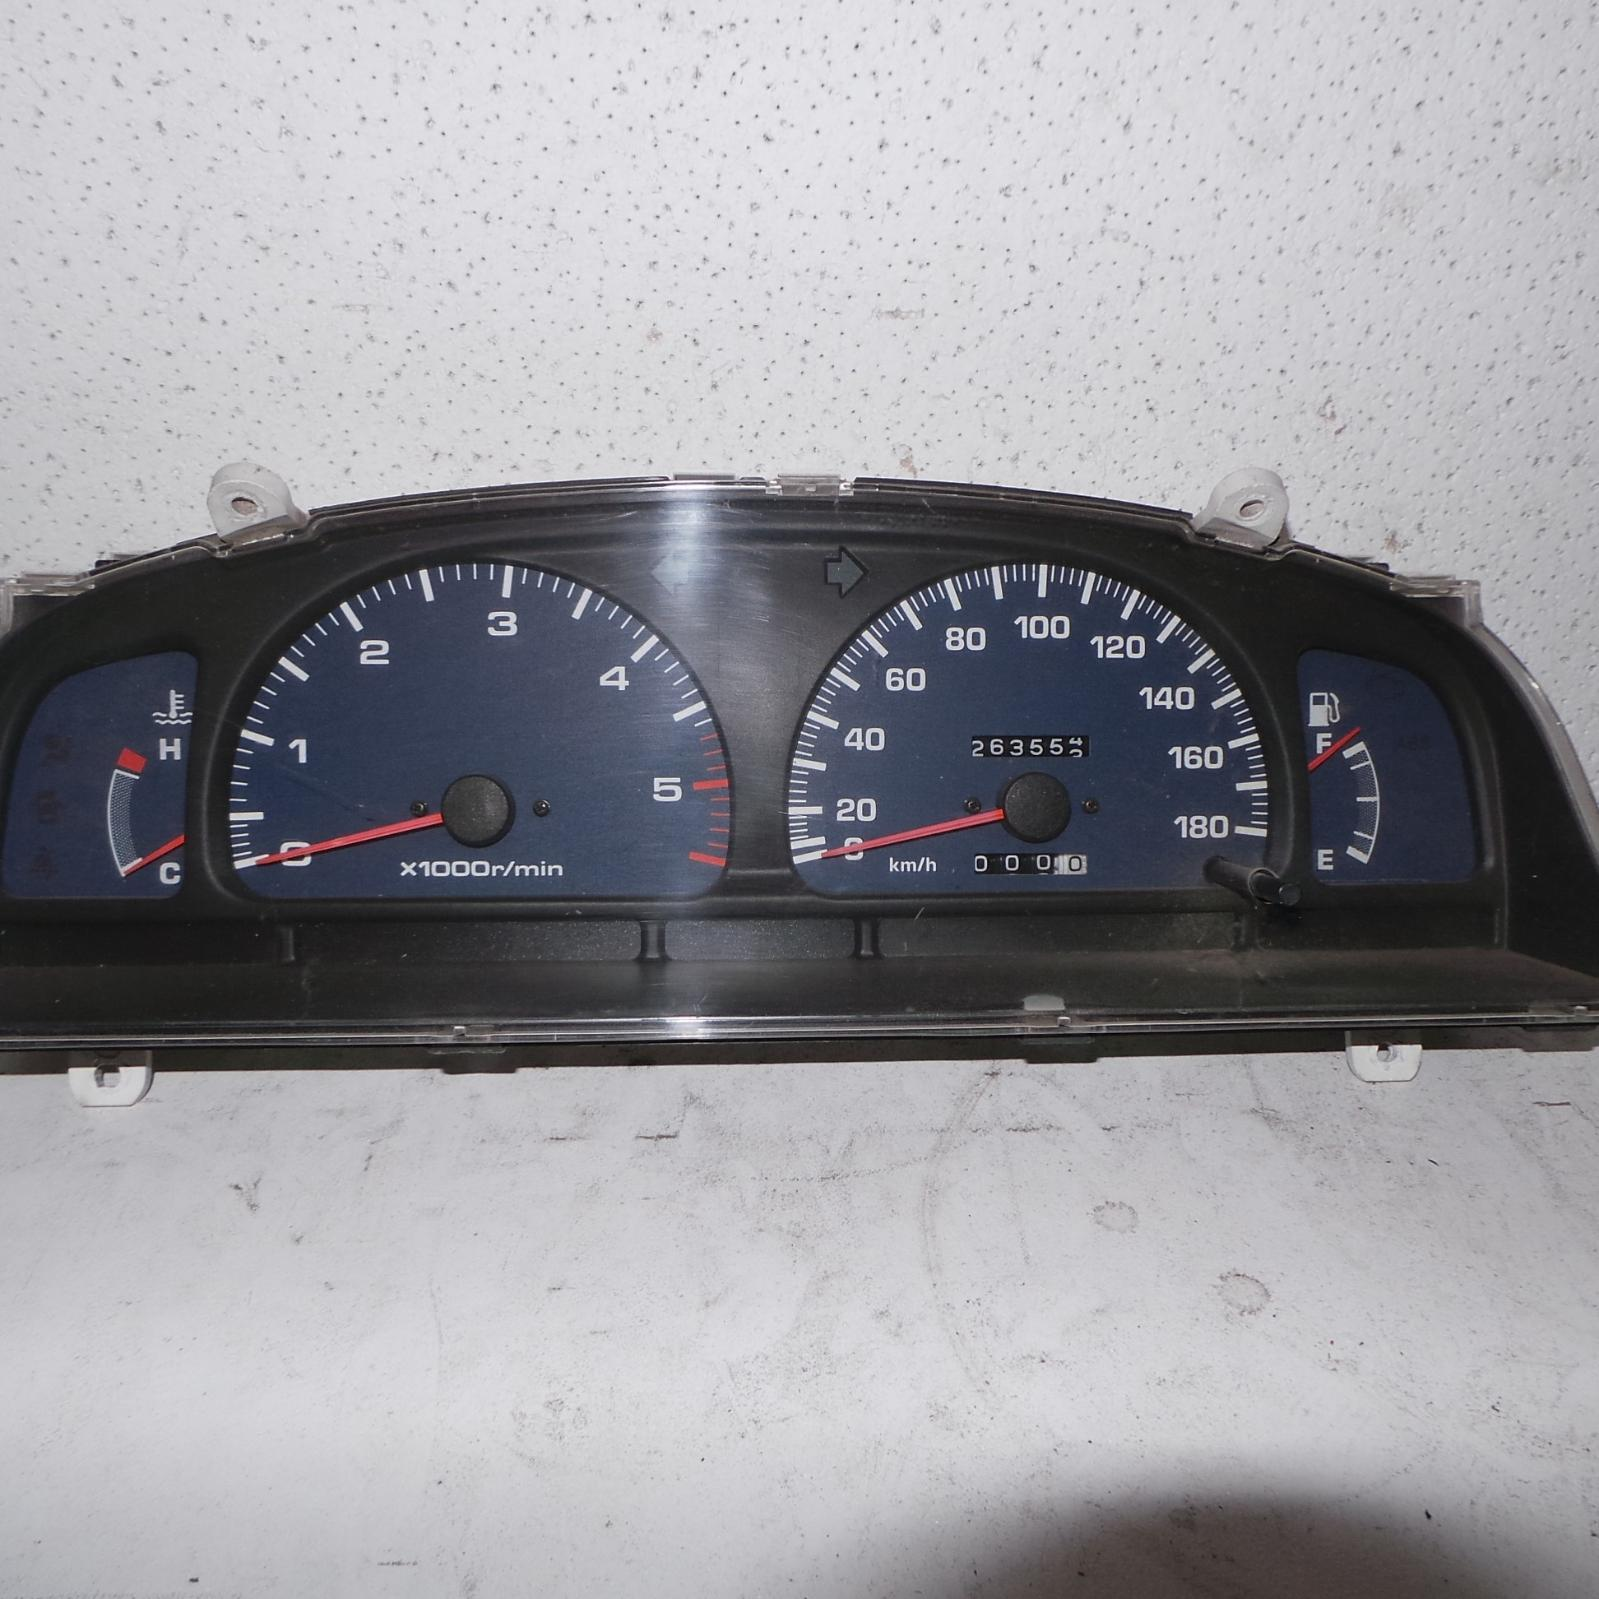 TOYOTA HILUX, Instrument Cluster, DIESEL, CABLE TYPE, W/ TACHO, 09/97-03/05